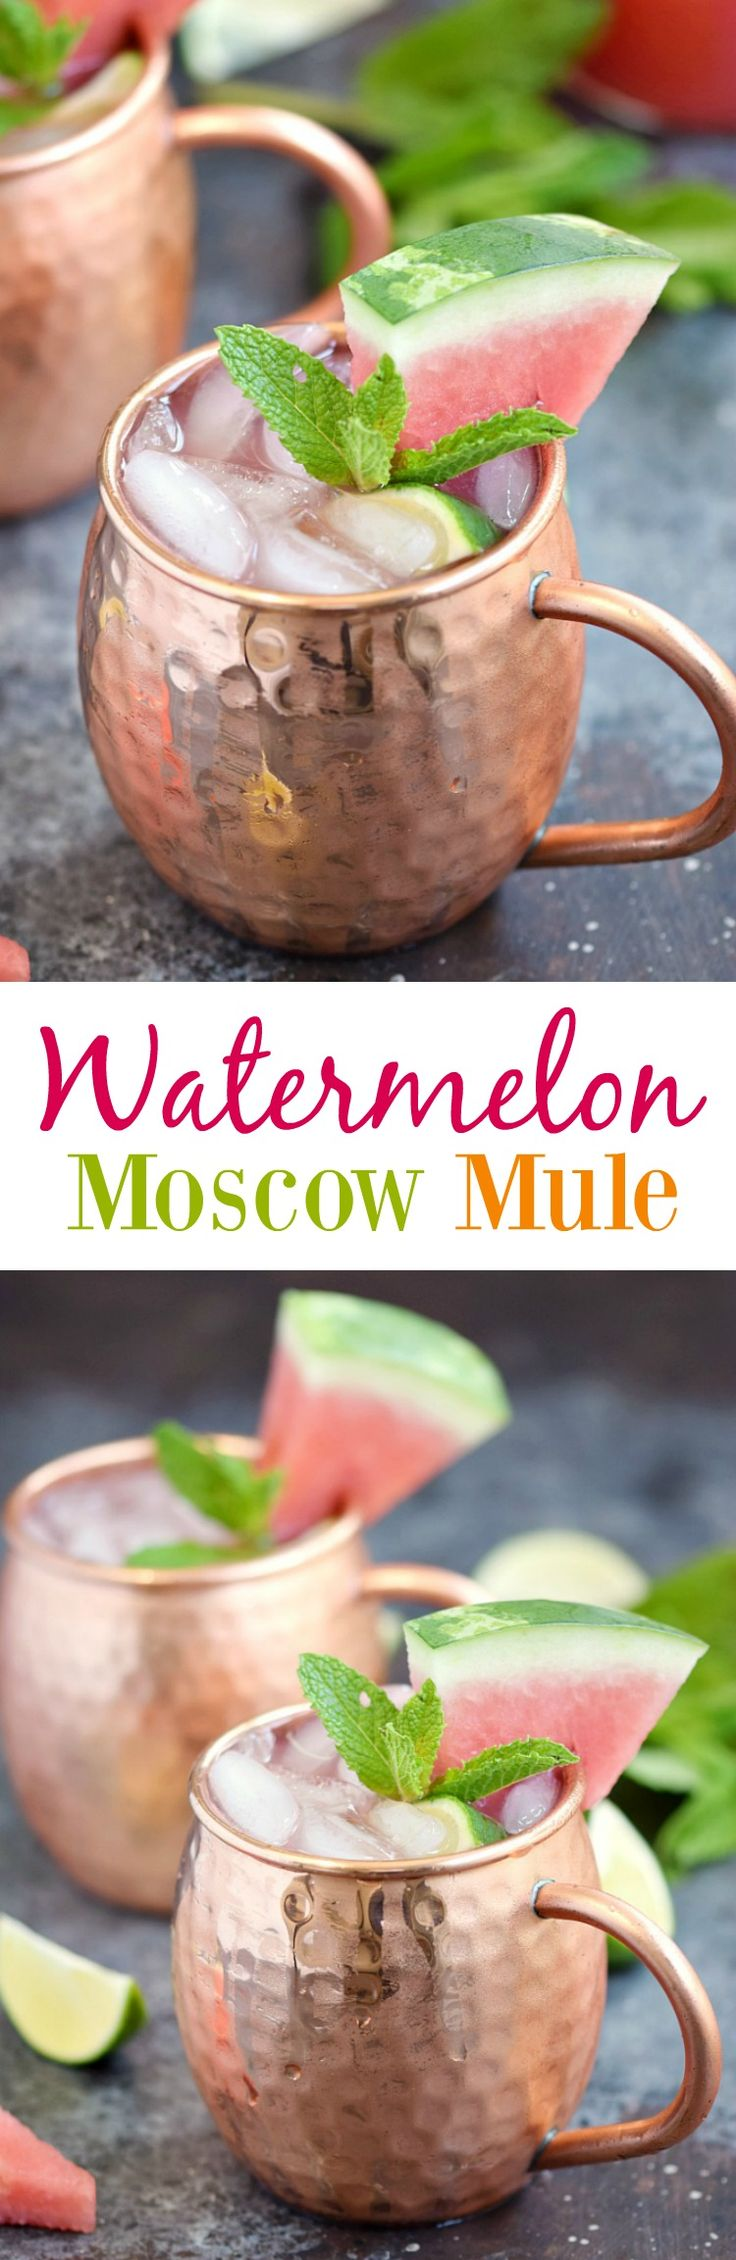 This Watermelon Moscow Mule is the perfect light and refreshing cocktail to enjoy on those hot summer nights! cookingwithcurls.com